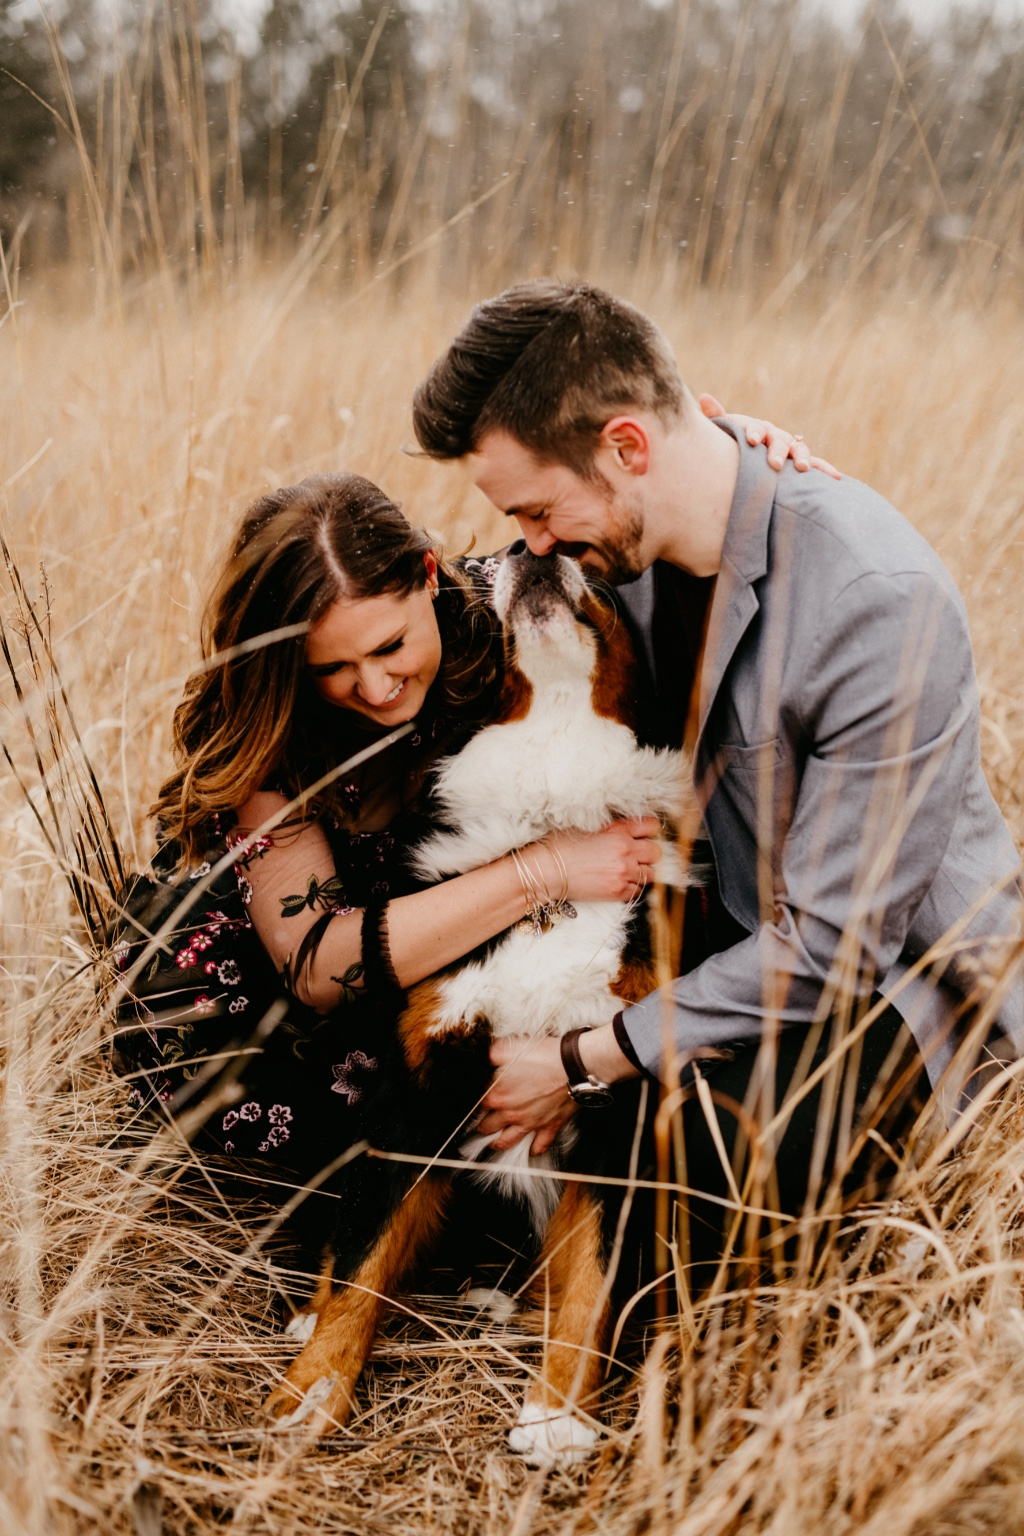 If you are planning a family, engagement, or even your wedding and you have a dog . . . Caleb and I would LOVE to be your photographers